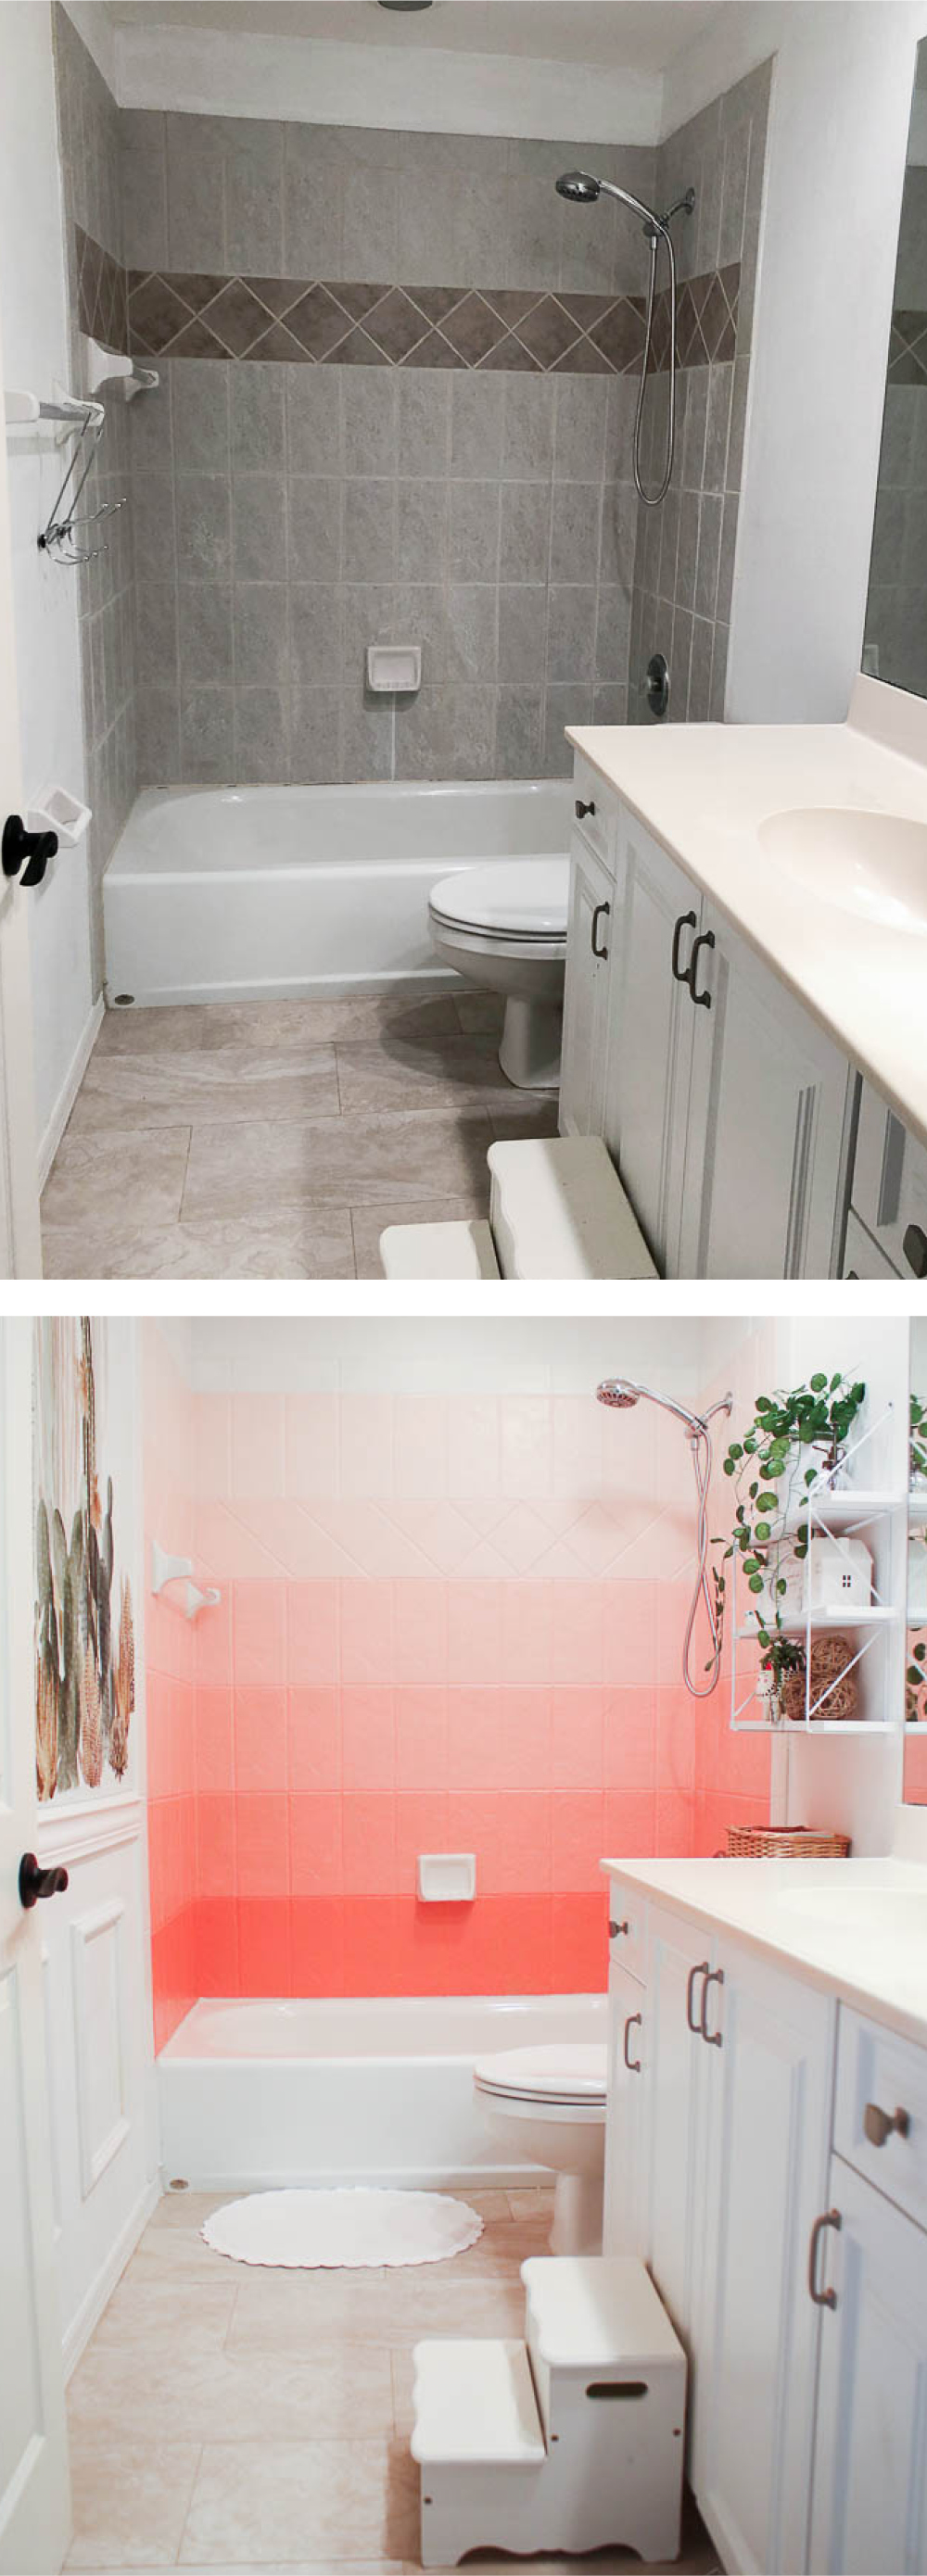 How To Paint Bathroom Tile Floor Shower Backsplash House Mix